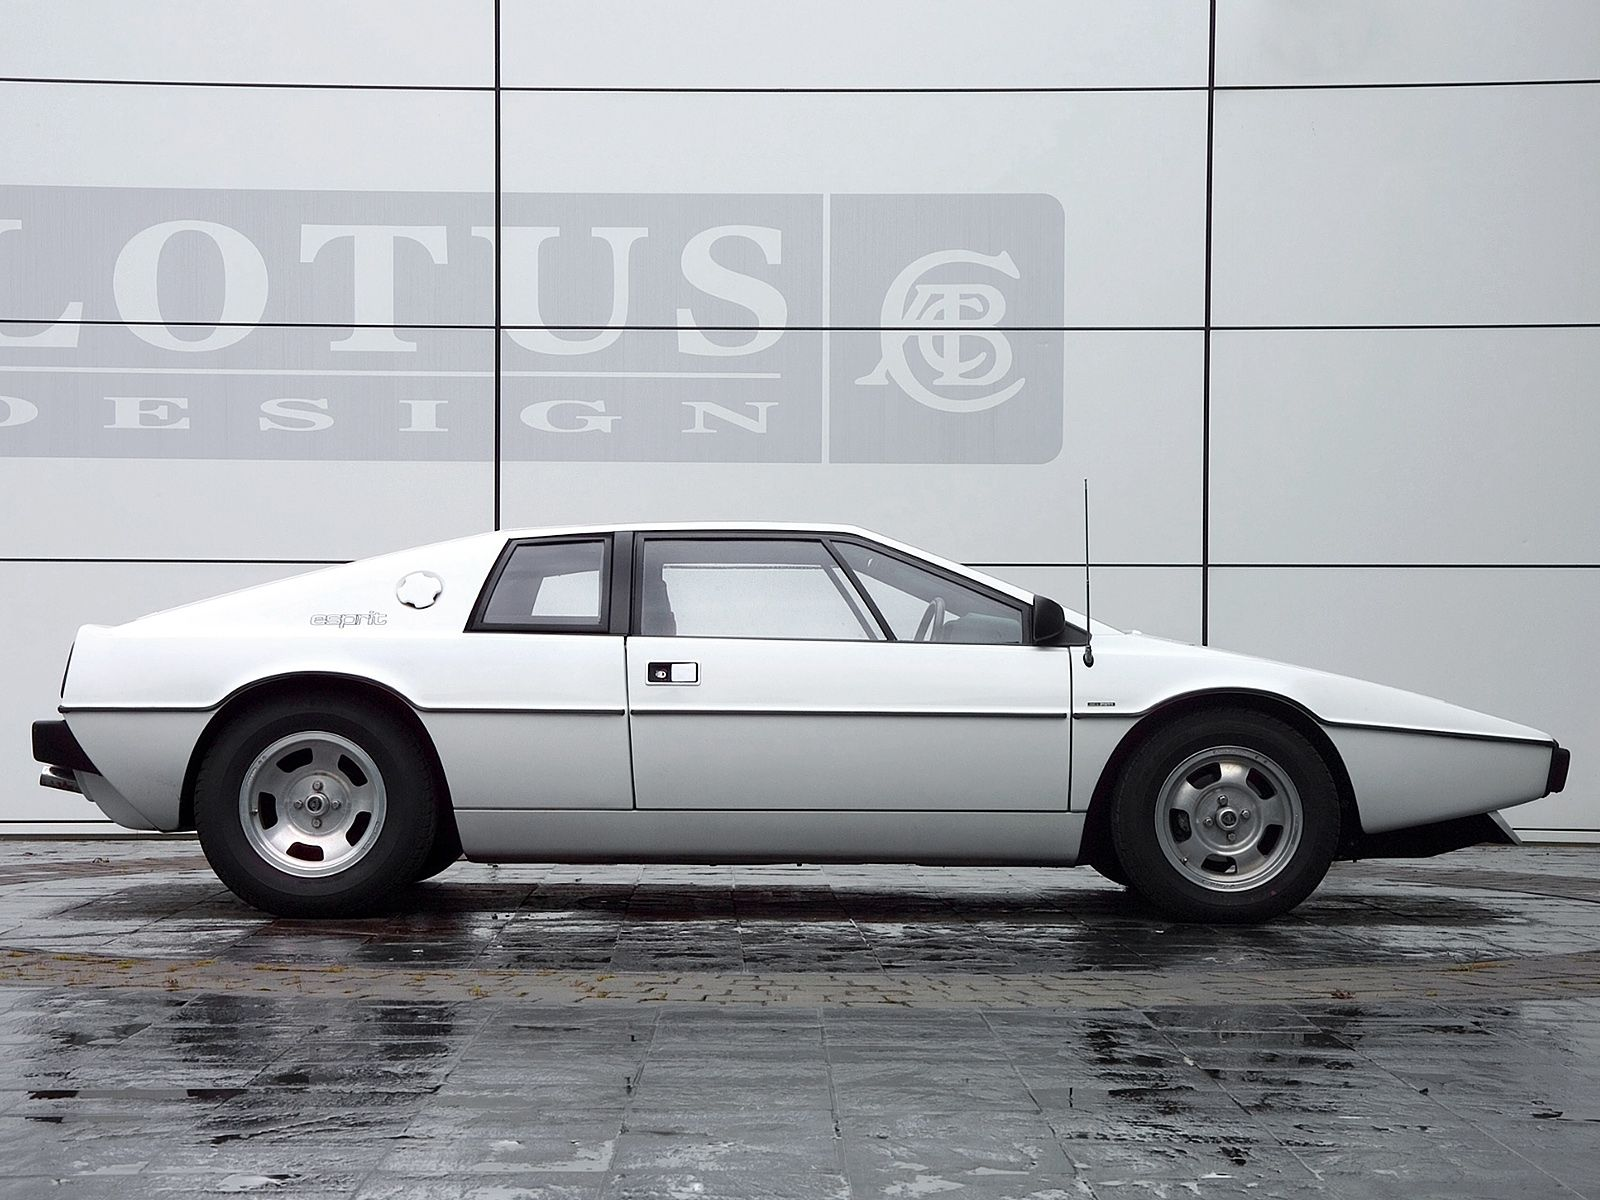 1976-78 Lotus Esprit. One of my dream projects!